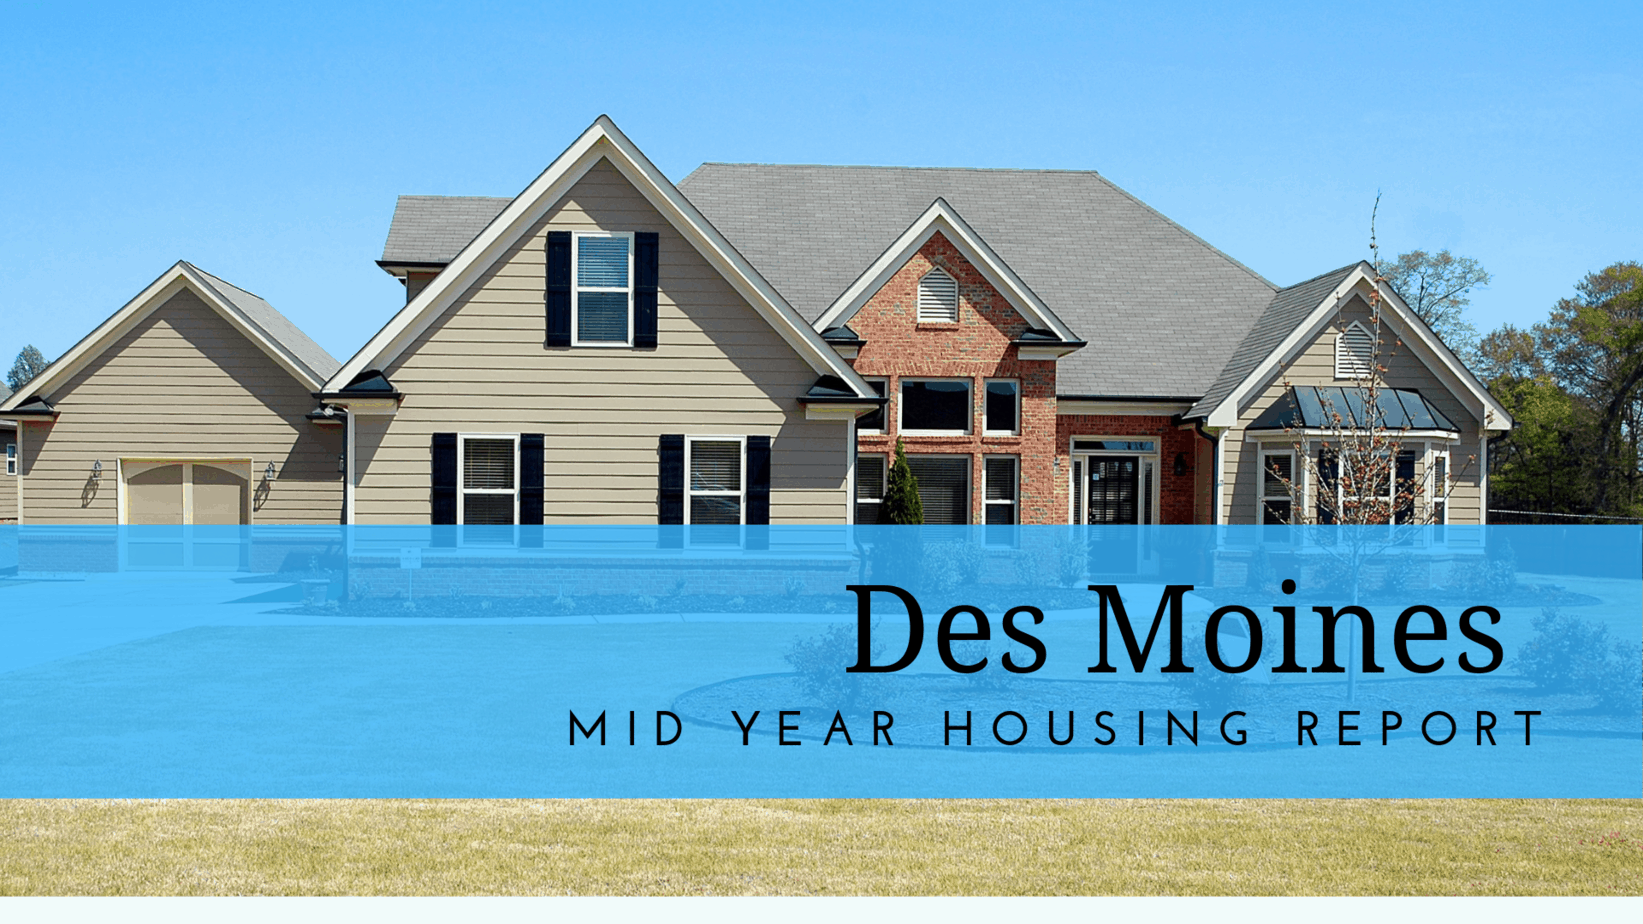 Mid-Year 2019 Des Moines Housing Report